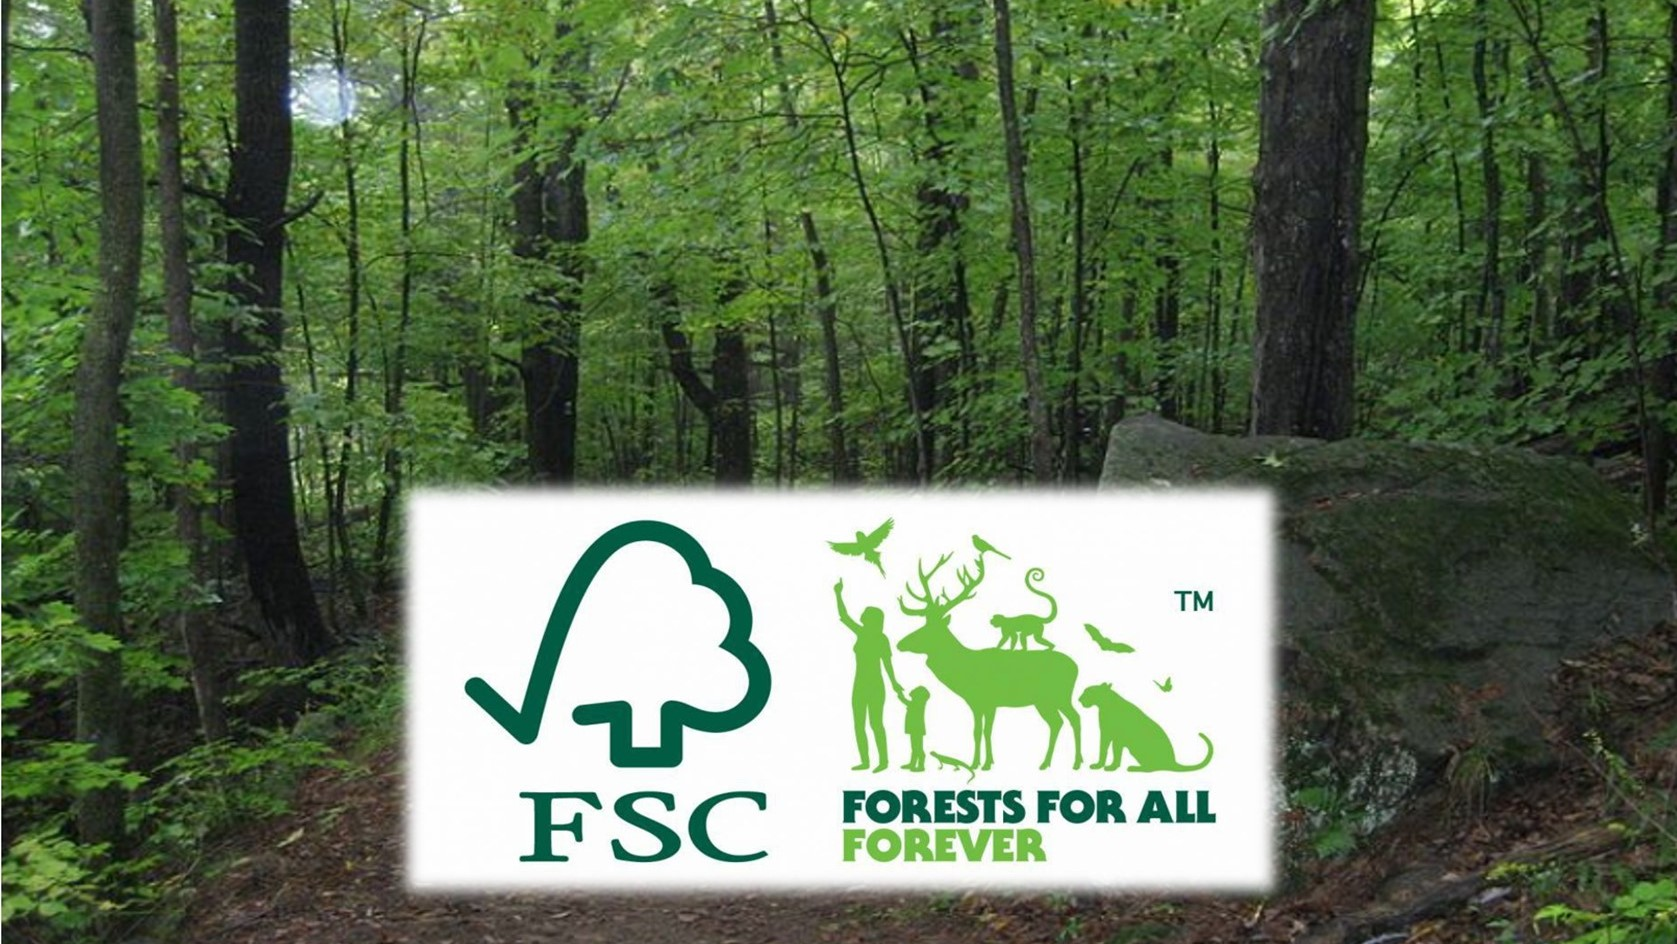 There are the reasons why FSC label becomes important for people and forest